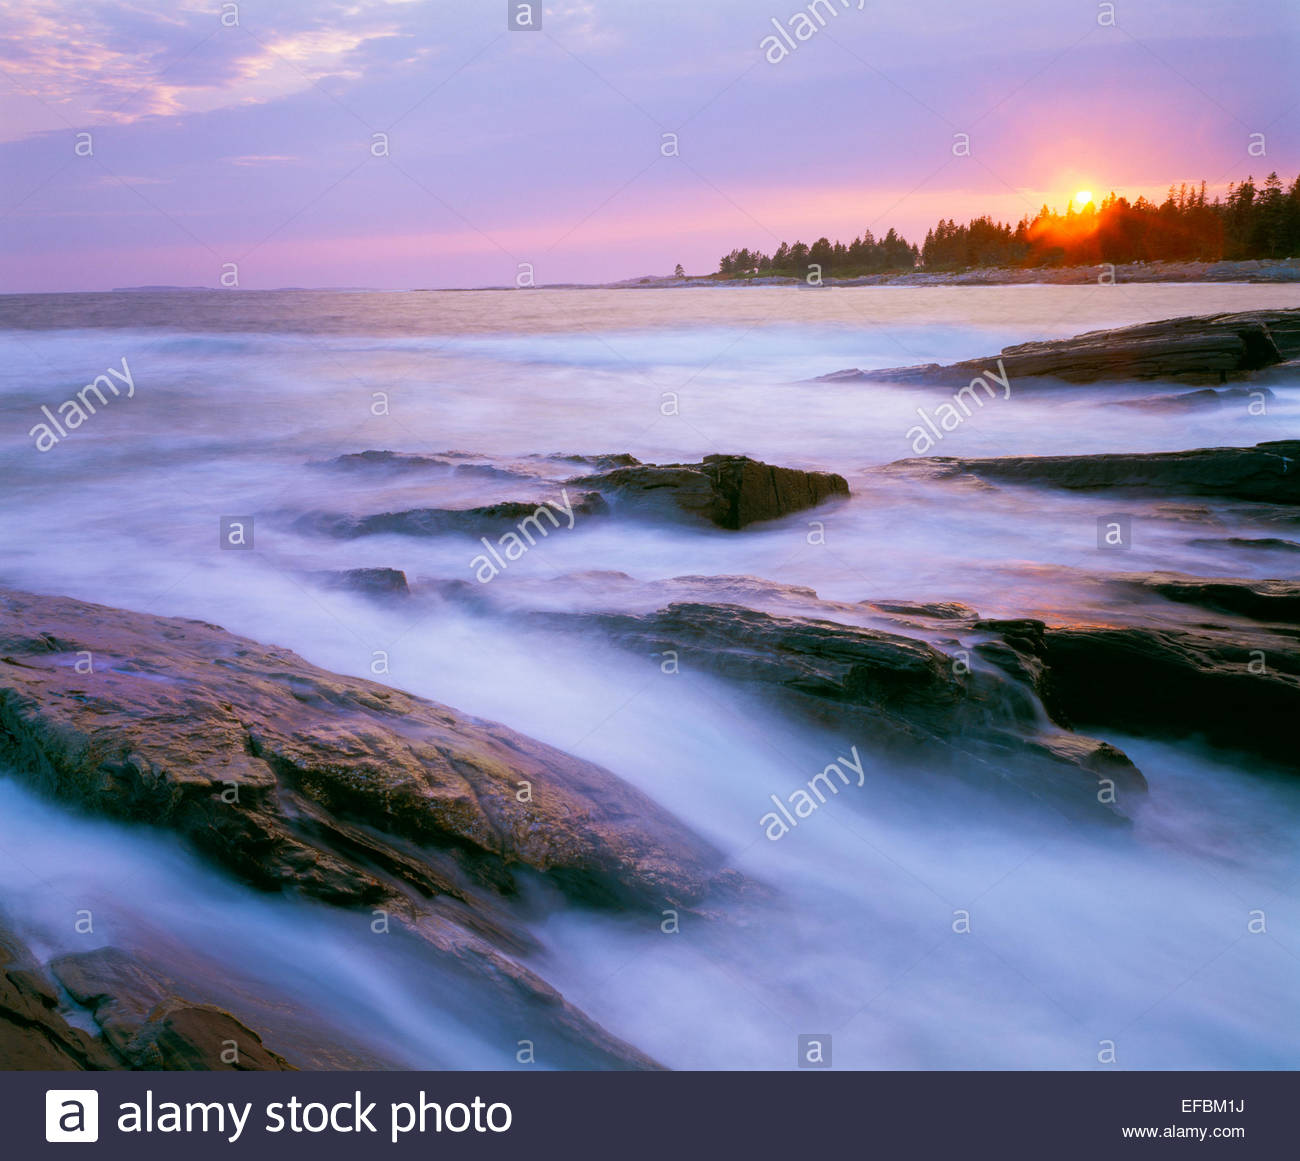 Sunset, Penobscot Bay, Maine - Stock Image